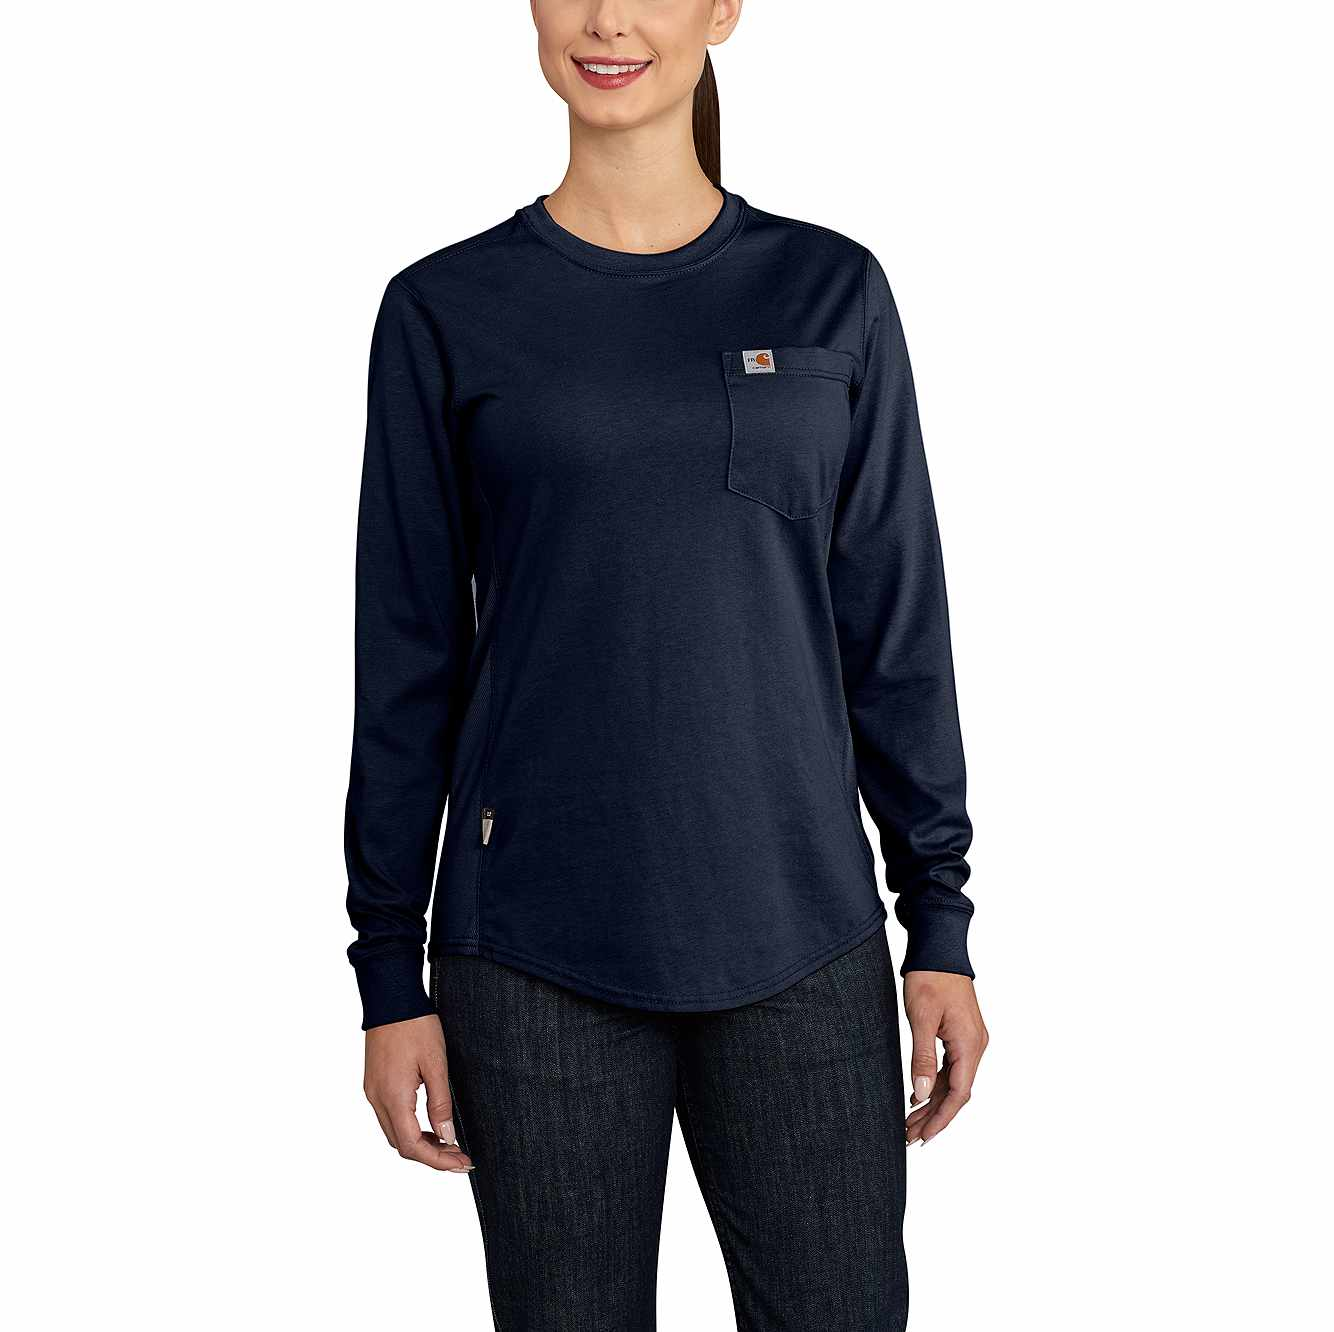 Picture of Women's FR Force Cotton Long-Sleeve Crewneck T-Shirt in Dark Navy